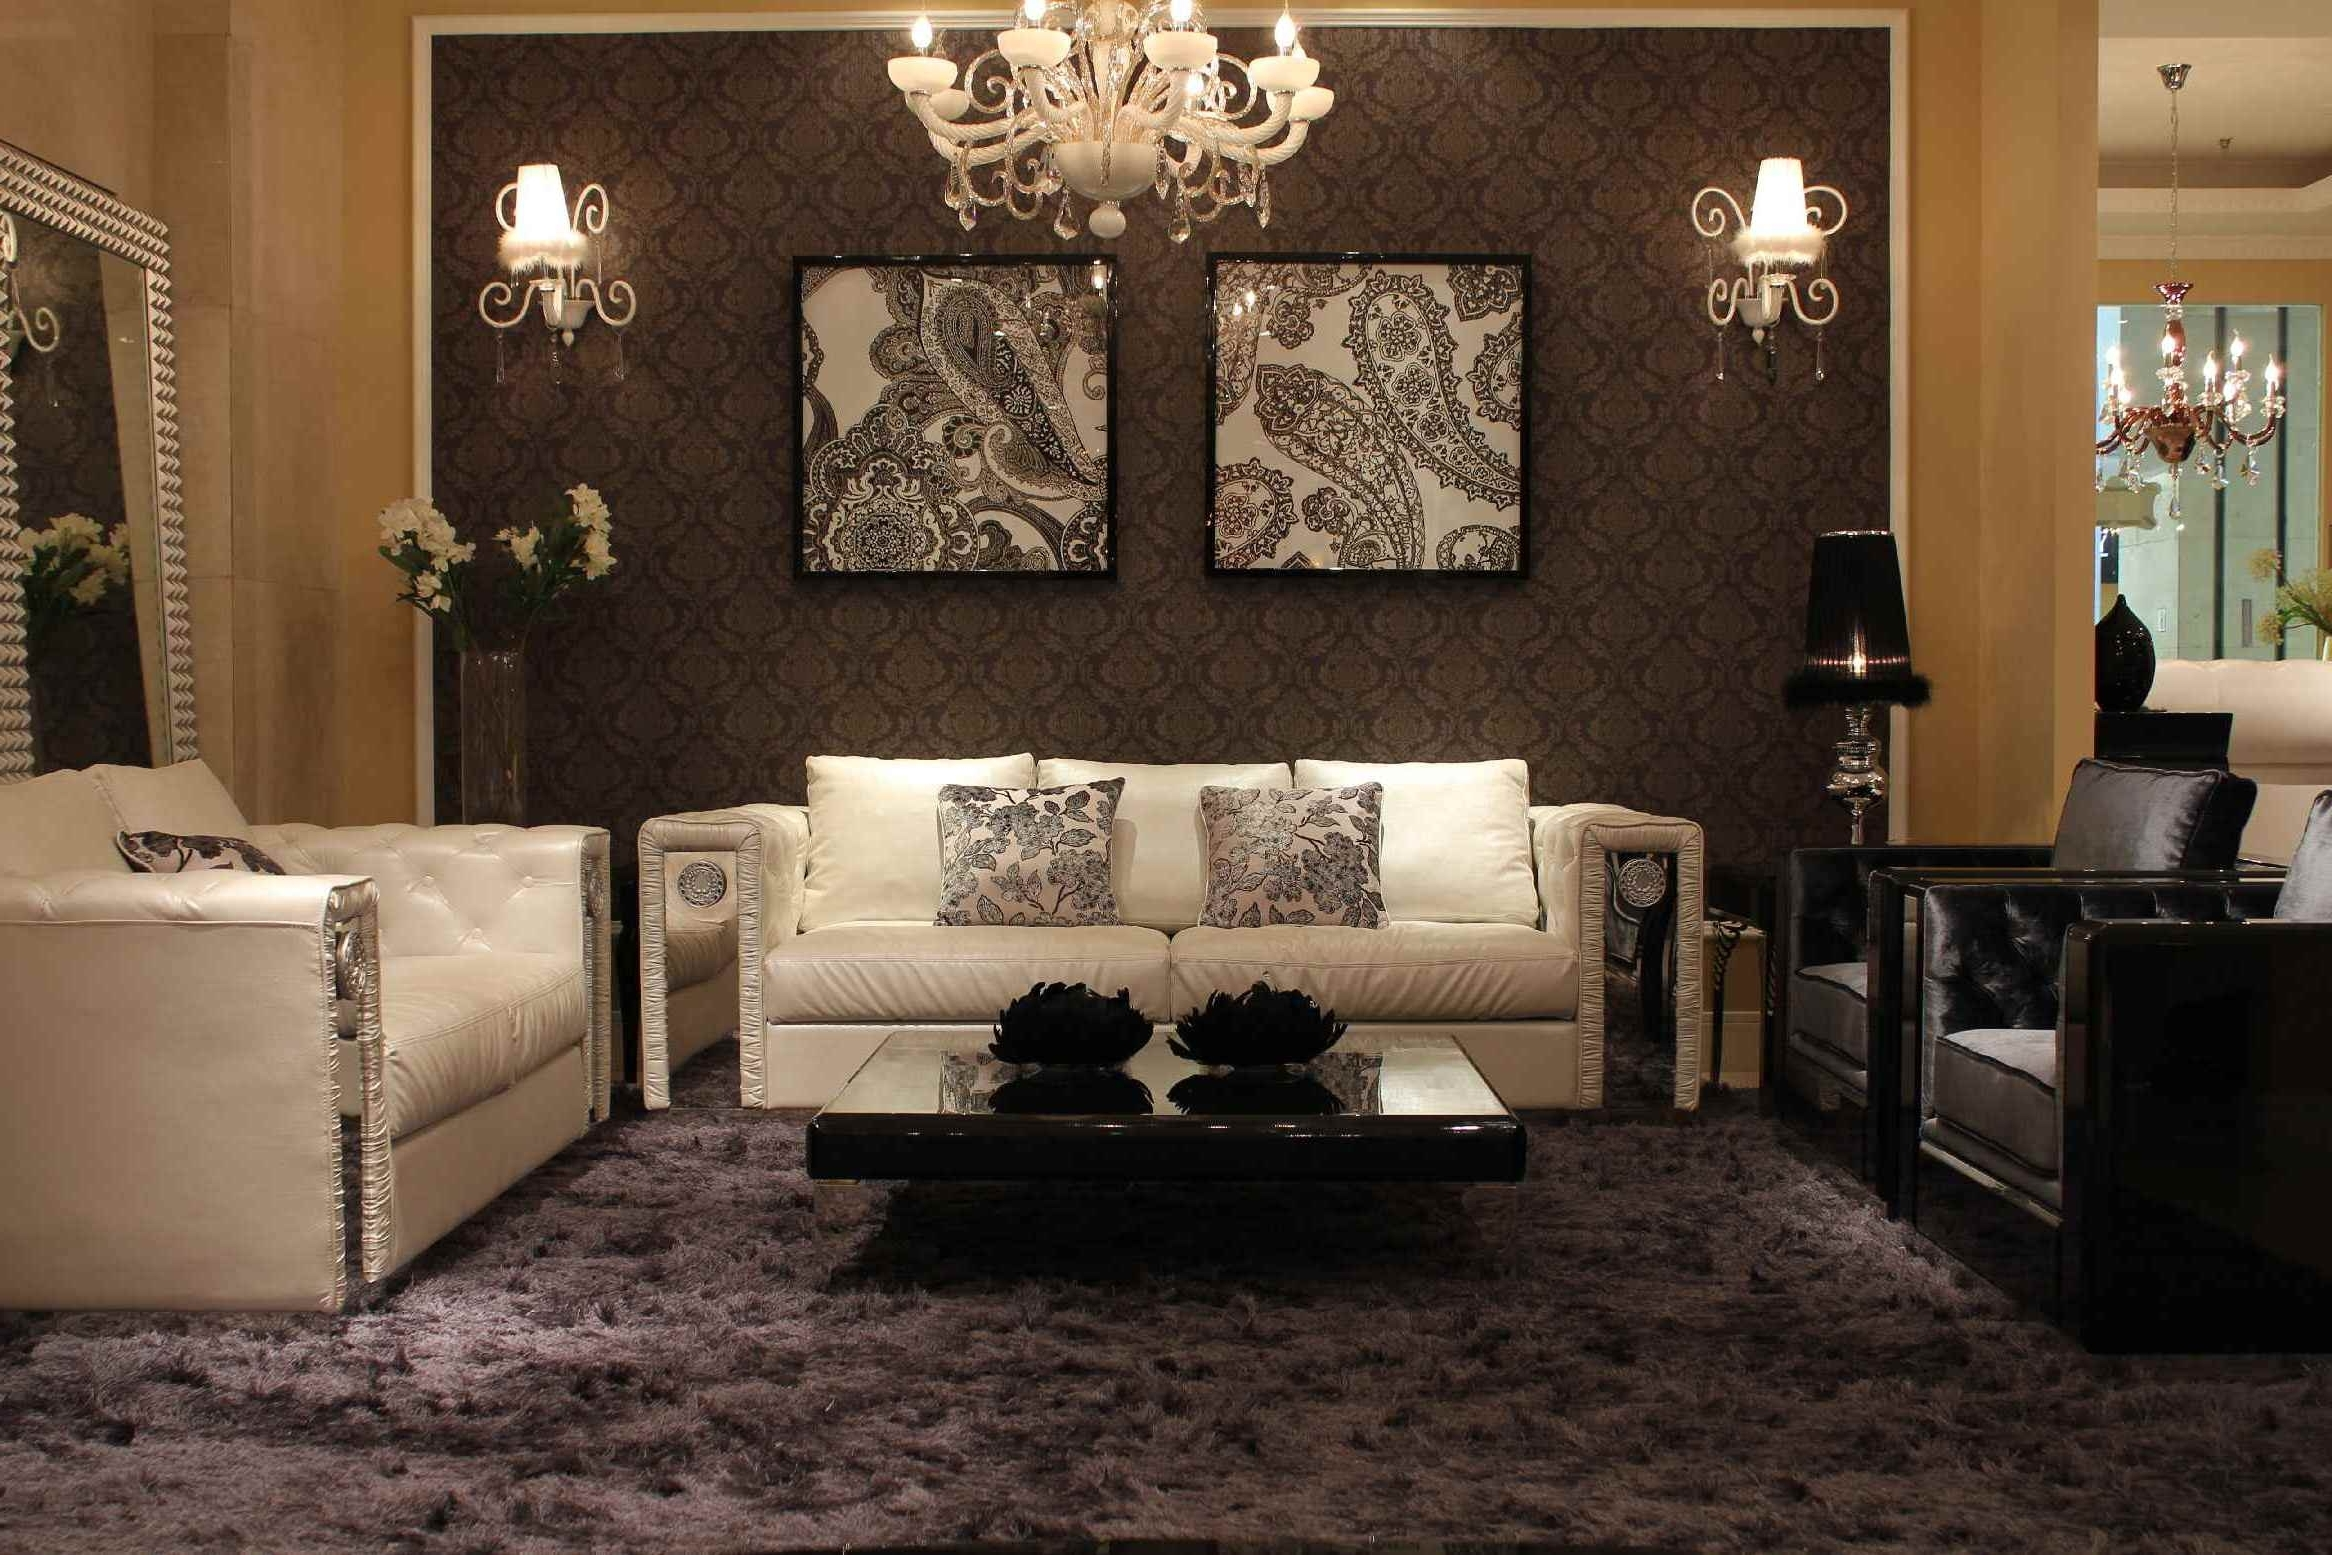 Most Recent Interior Luxury Ideas Of Living With Crystal Chandelier And Wall Intended For Wall Mounted Chandelier Lighting (View 4 of 20)